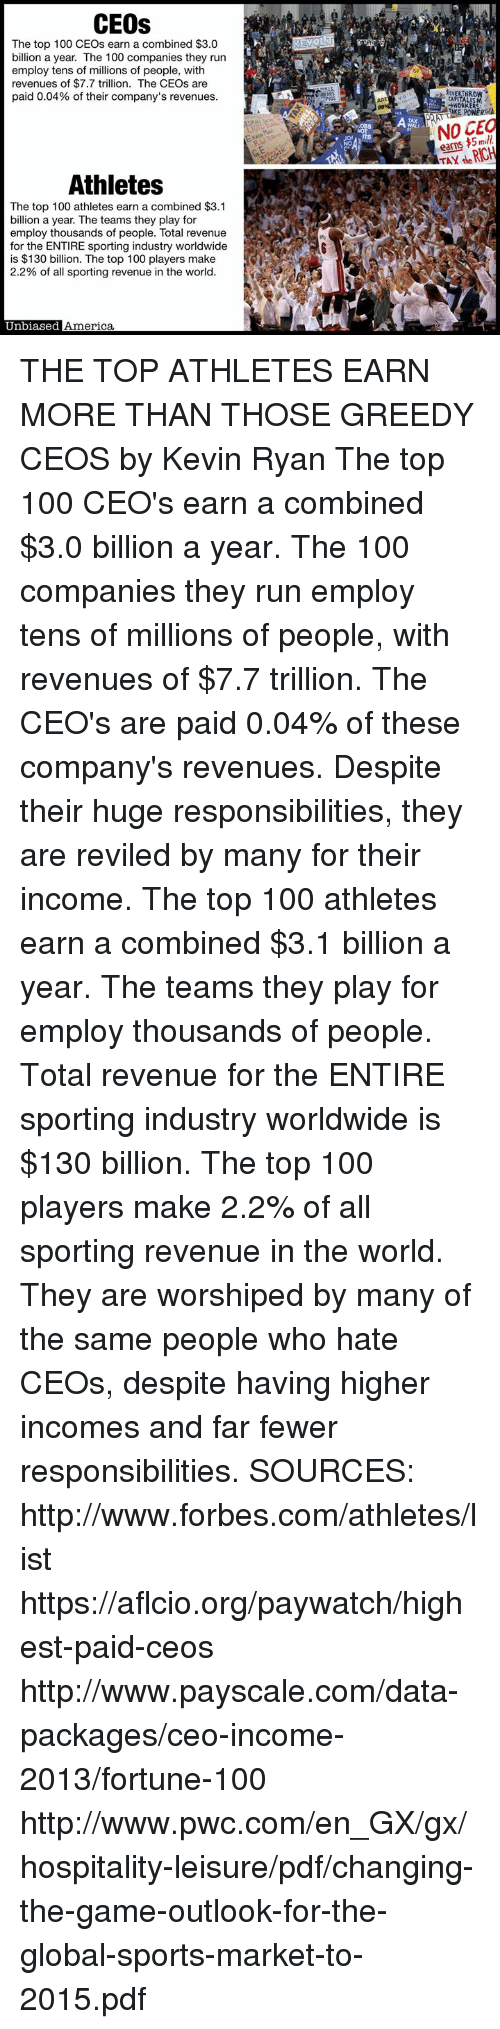 hospitality: CEOs  The top 100 CEOs earn a combined $3.0  billion a year. The 100 companies they run  employ tens of millions of people, with  revenues of $7.7 trillion. The CEOs are  paid 0.04% of their company's revenues  JOVERTHROW  ITALI  ARD  CAP  WORKER  NOSES?  WALL  earns 5mil  TAY de RICH  Jo  Athletes  The top 100 athletes earn a combined $3.1  billion a year. The teams they play for  employ thousands of people. Total revenue  for the ENTIRE sporting industry worldwide  is $130 billion. The top 100 players make  2.2% of all sporting revenue in the world.  Unbiased  America THE TOP ATHLETES EARN MORE THAN THOSE GREEDY CEOS by Kevin Ryan  The top 100 CEO's earn a combined $3.0 billion a year.  The 100 companies they run employ tens of millions of people, with revenues of $7.7 trillion.  The CEO's are paid 0.04% of these company's revenues.  Despite their huge responsibilities, they are reviled by many for their income.  The top 100 athletes earn a combined $3.1 billion a year. The teams they play for employ thousands of people. Total revenue for the ENTIRE sporting industry worldwide is $130 billion. The top 100 players make 2.2% of all sporting revenue in the world.  They are worshiped by many of the same people who hate CEOs, despite having higher incomes and far fewer responsibilities.  SOURCES: http://www.forbes.com/athletes/list https://aflcio.org/paywatch/highest-paid-ceos http://www.payscale.com/data-packages/ceo-income-2013/fortune-100 http://www.pwc.com/en_GX/gx/hospitality-leisure/pdf/changing-the-game-outlook-for-the-global-sports-market-to-2015.pdf